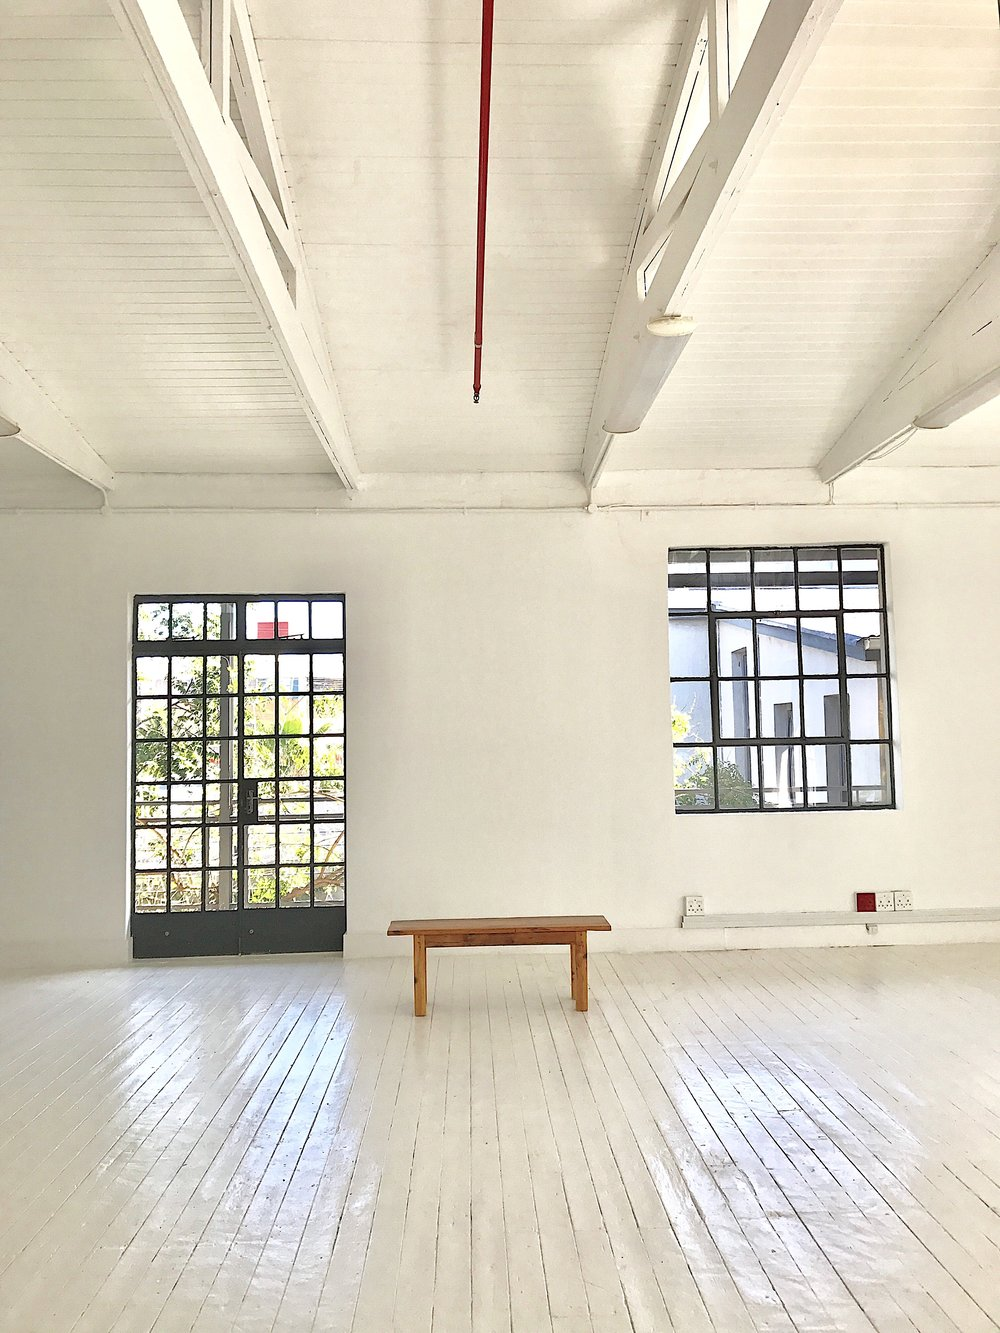 Silence Is Accurate Art Gallery empty, August 2017